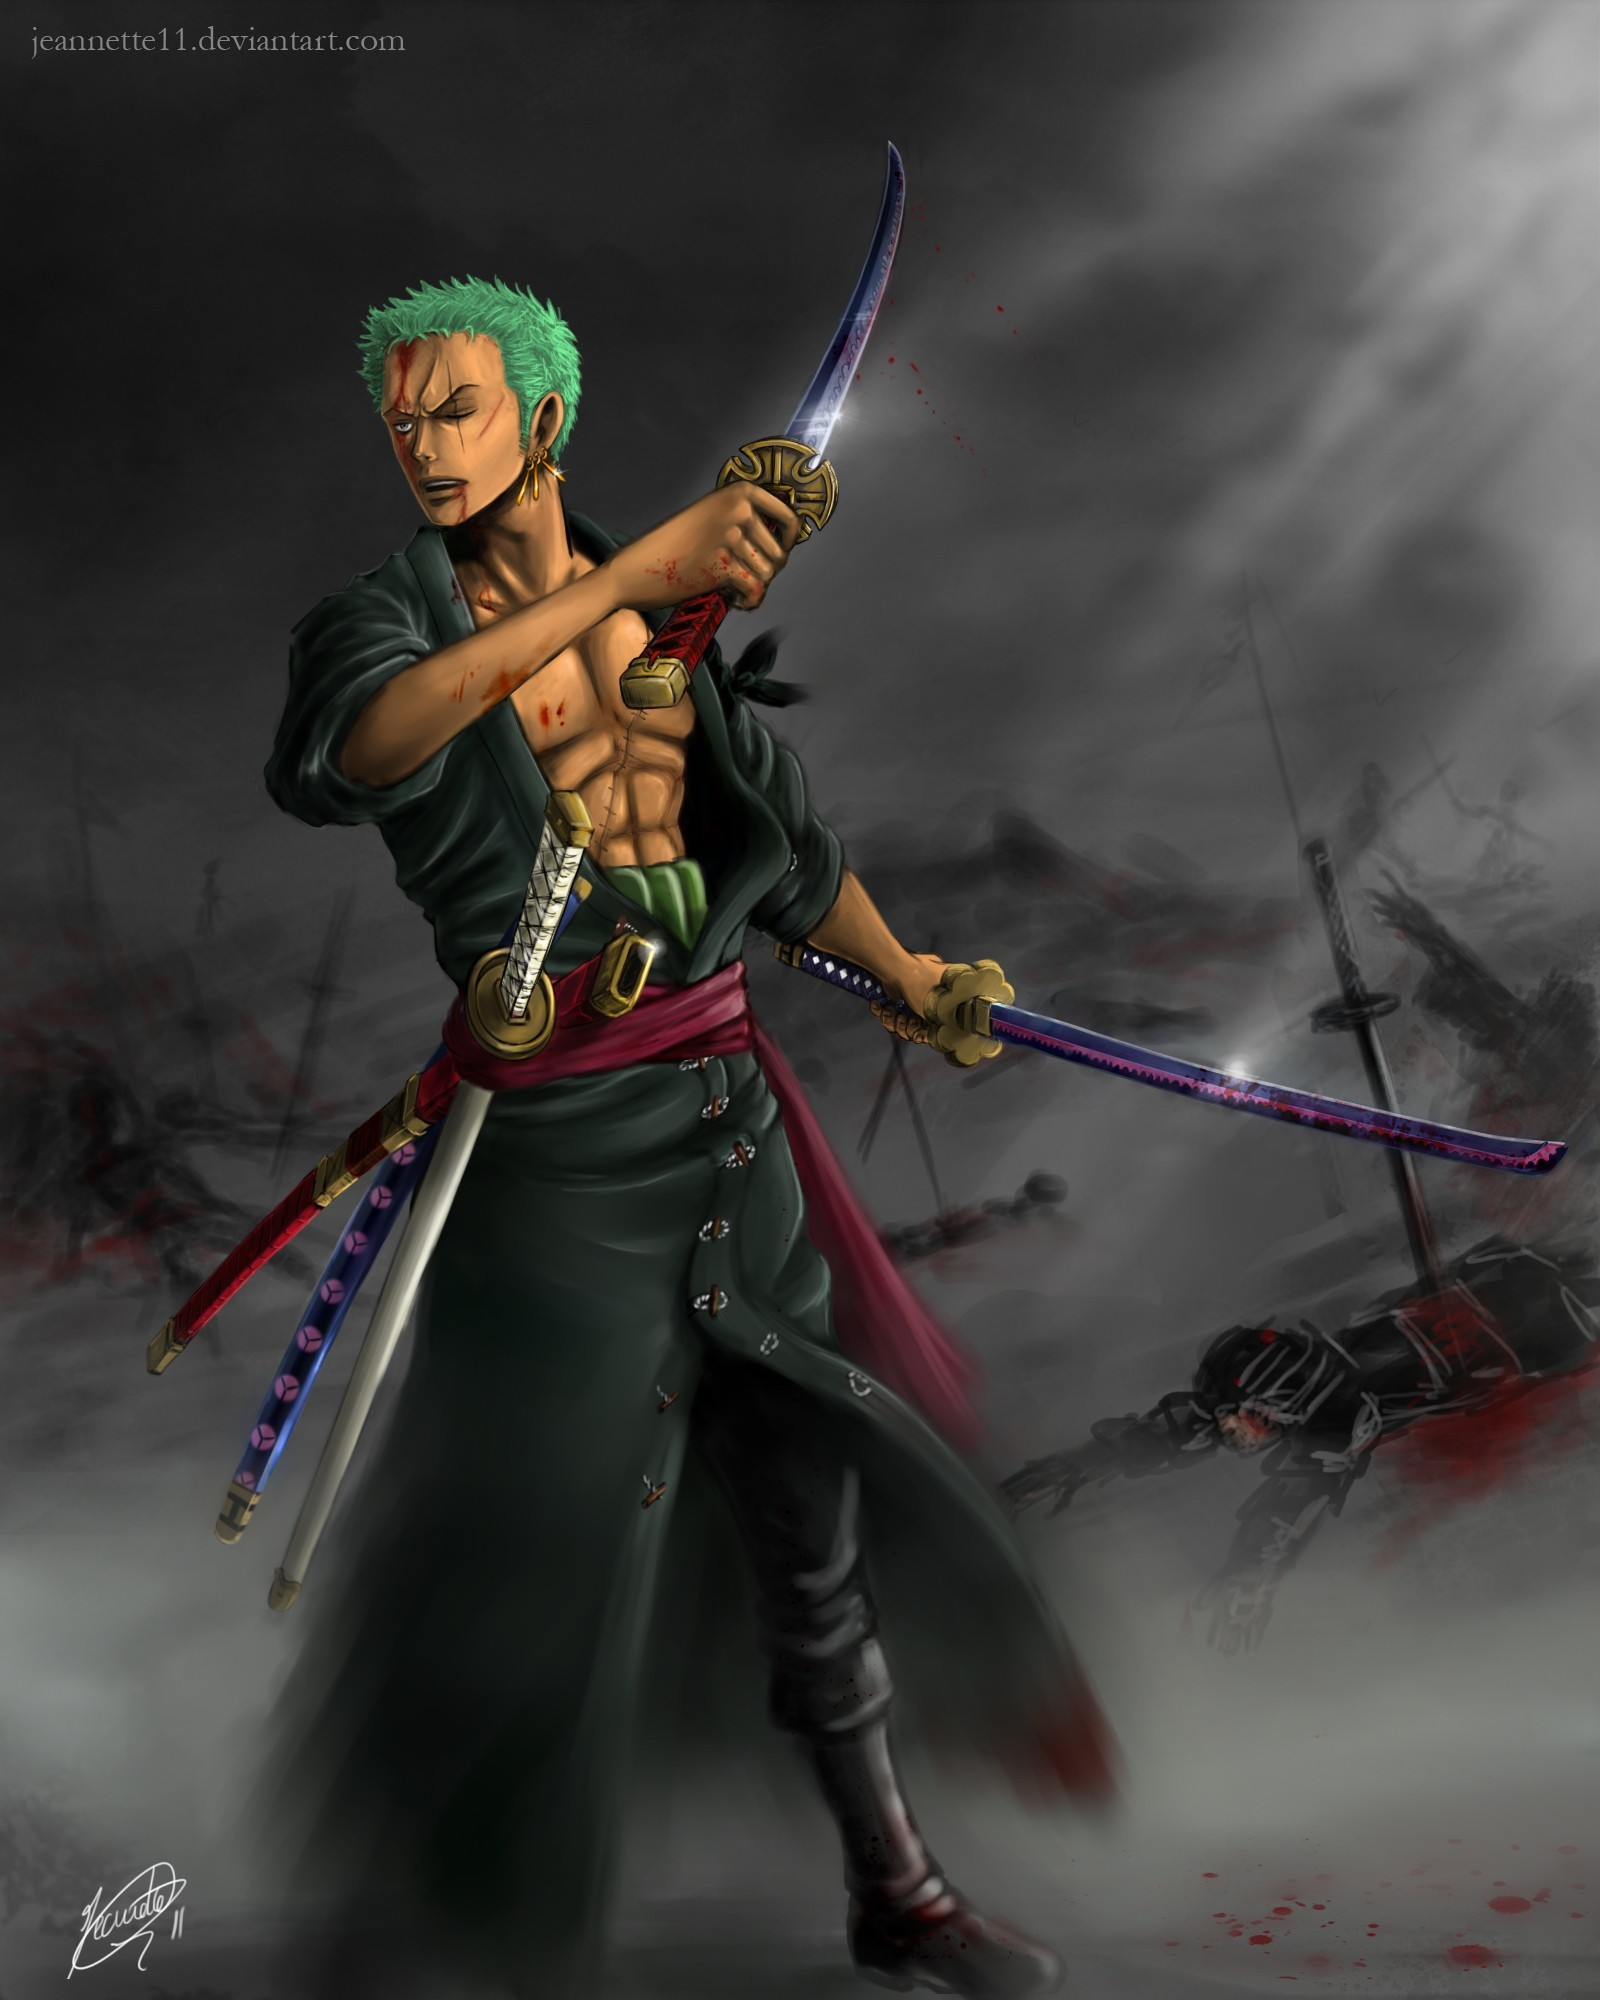 One Piece Zoro Wallpaper: One Piece Zoro Wallpapers (73+ Background Pictures